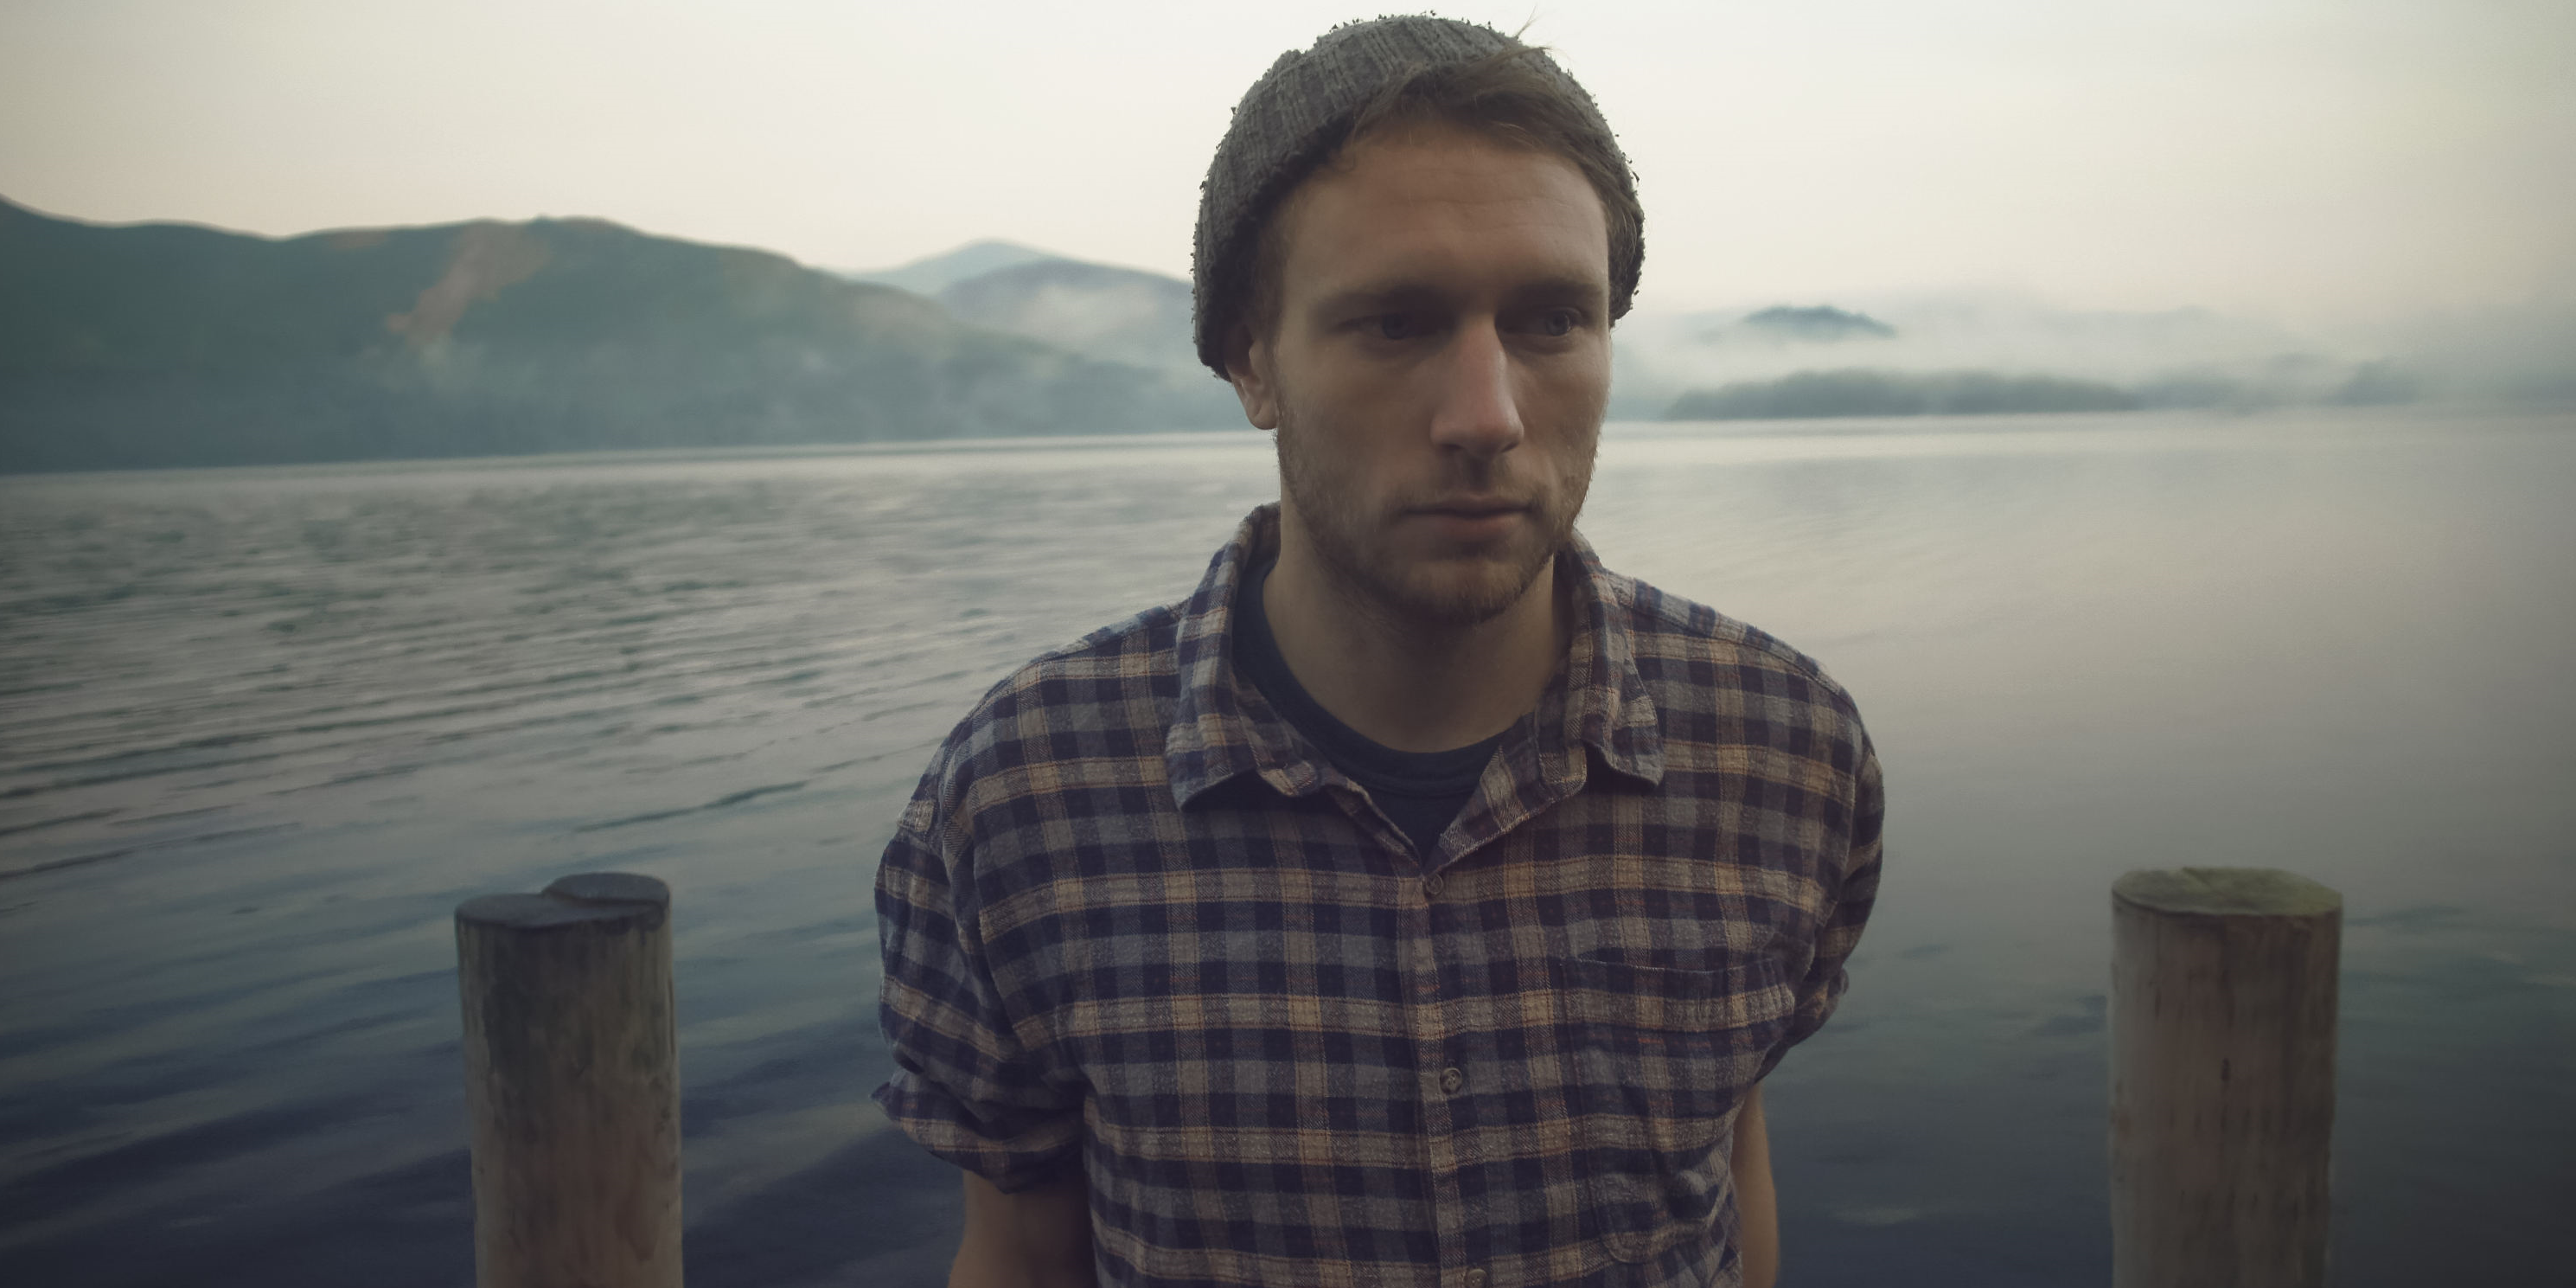 Novo Amor's Singapore shows have been postponed to July